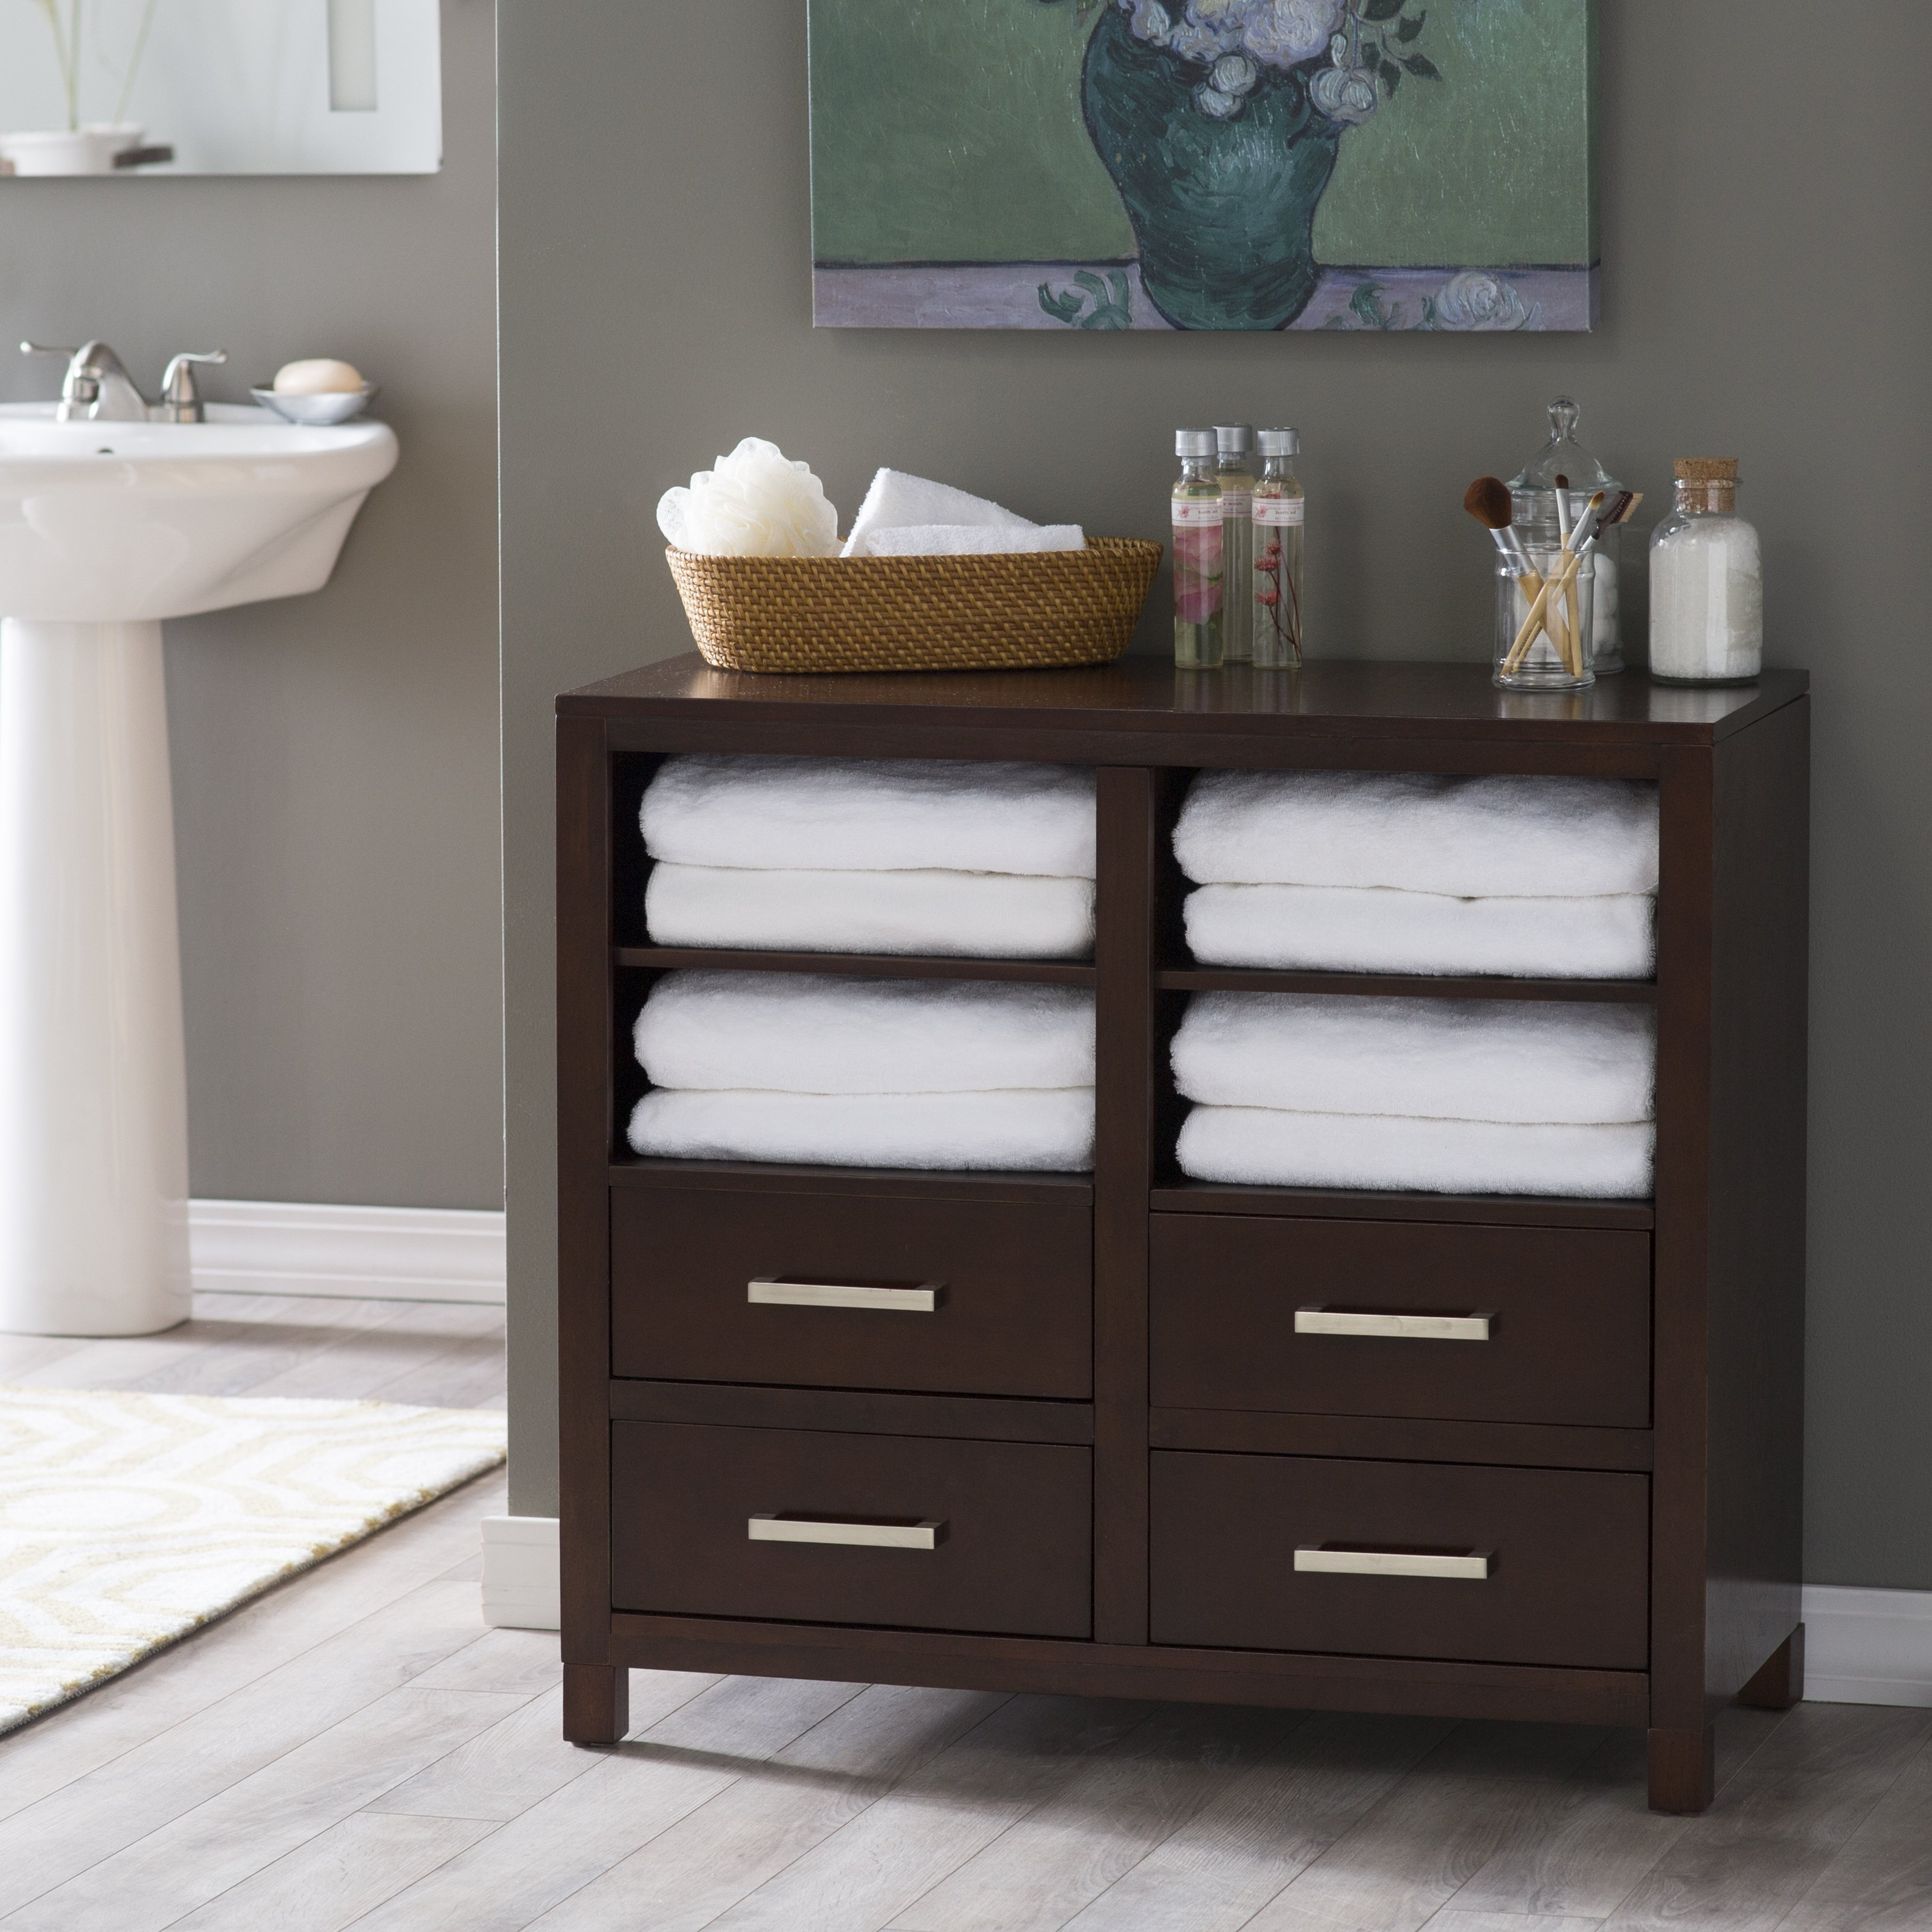 Bathroom Floor Storage Drawers